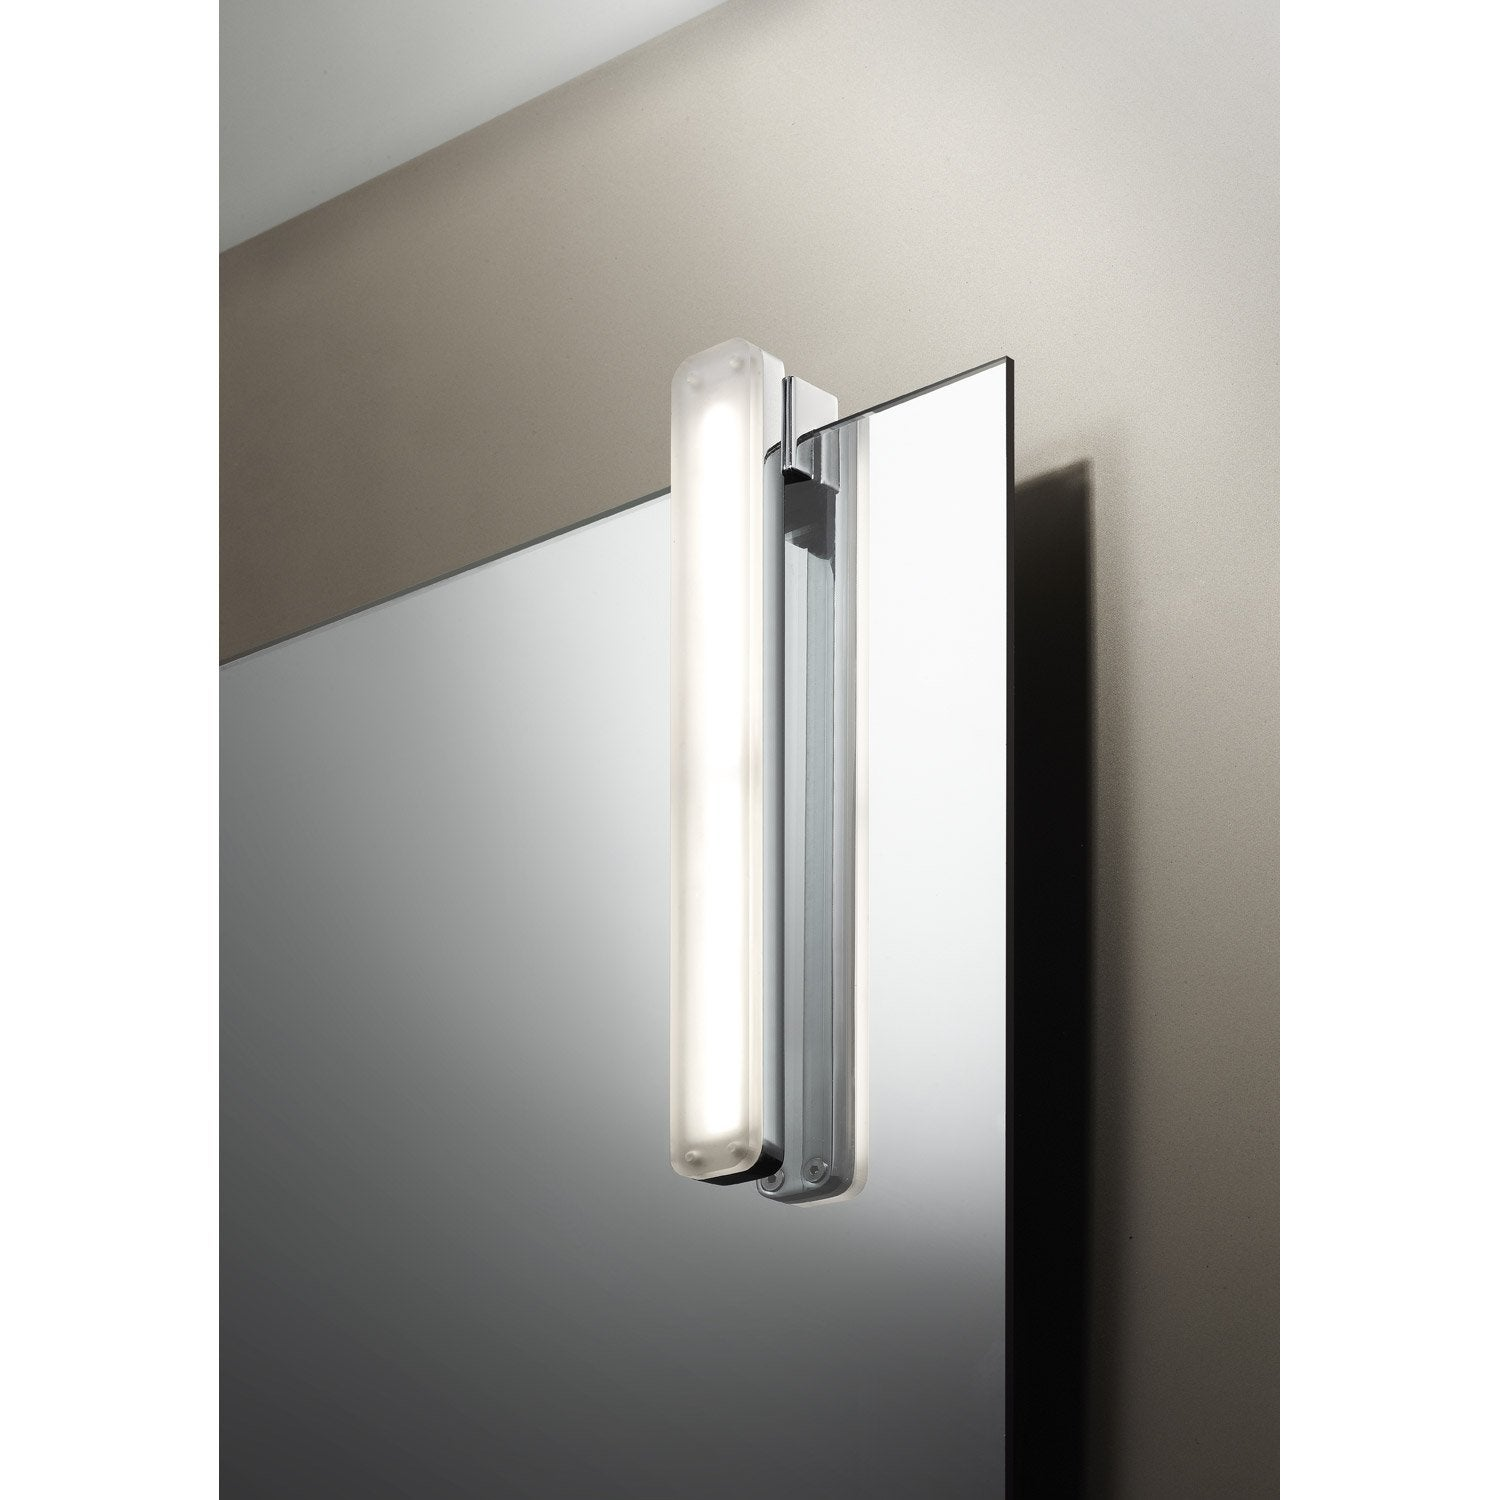 Awesome spot miroir salle de bain gallery awesome for Eclairage salle de bain led